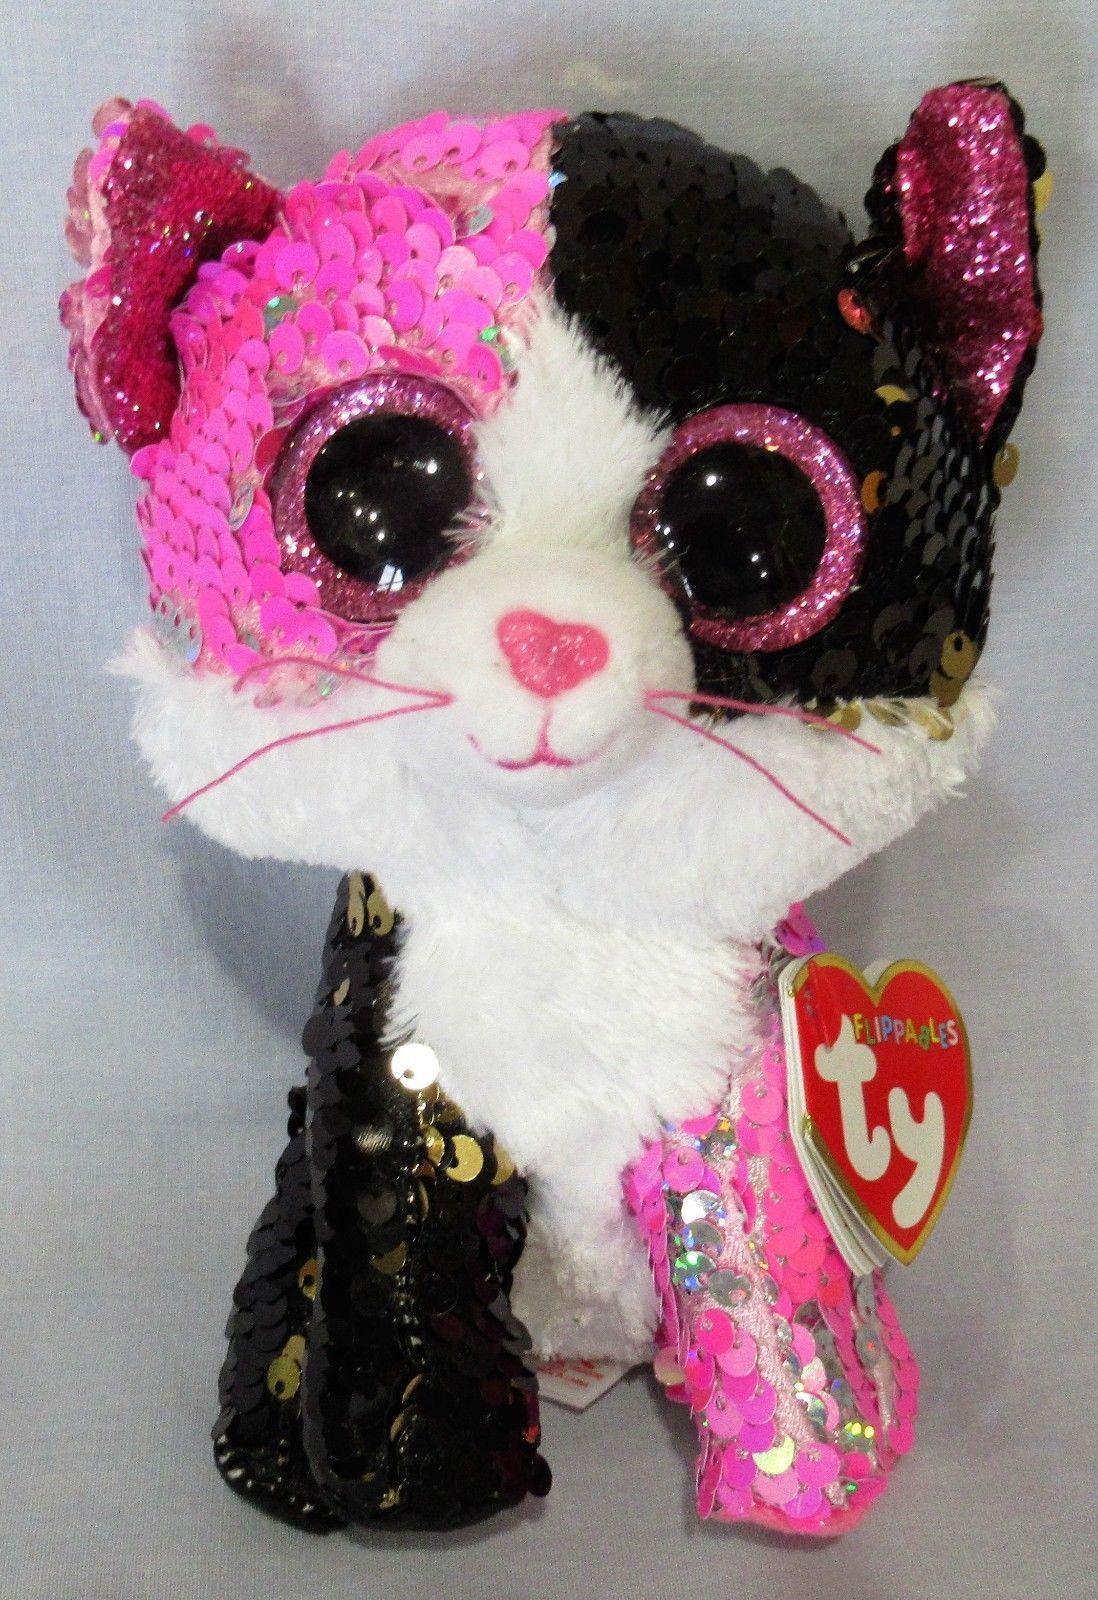 73924656aeb Current 438  Malibu - Cat - Ty Flippables Sequin Beanie 6 Boos - New With  Mint Tags -  BUY IT NOW ONLY   19.5 on  eBay  current  malibu  flippables   sequin ...